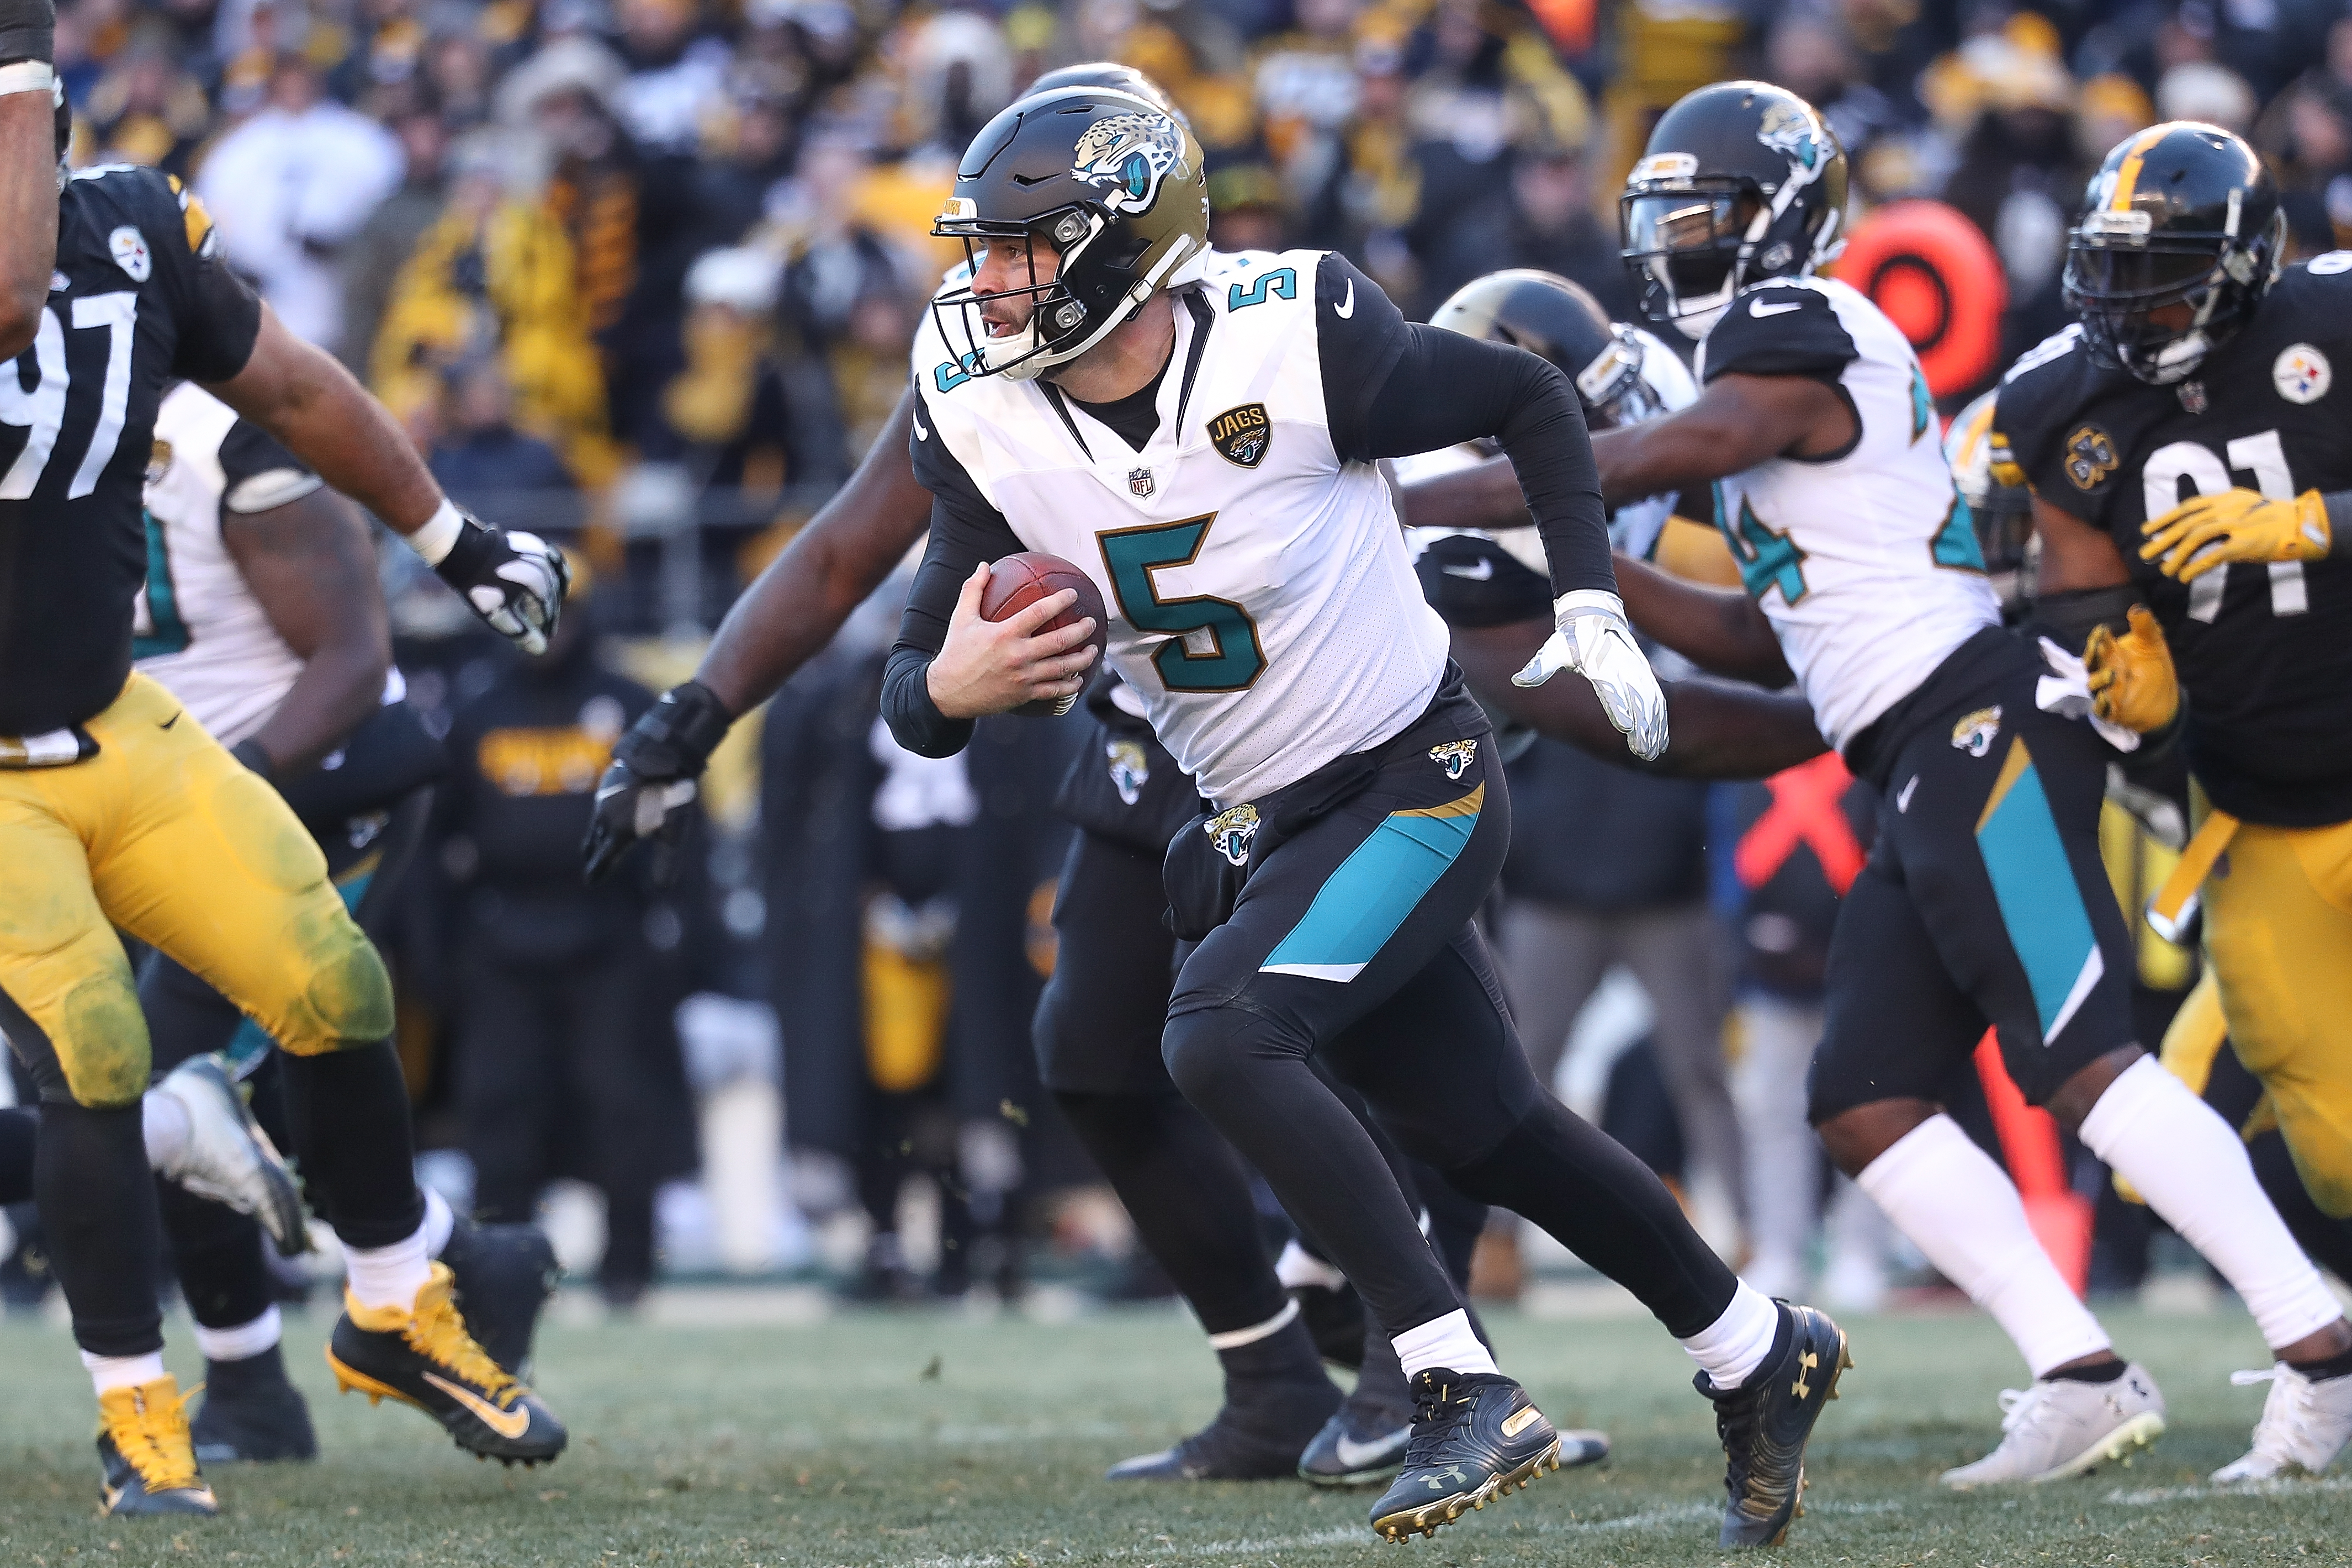 Jaguars are going to win the Super Bowl